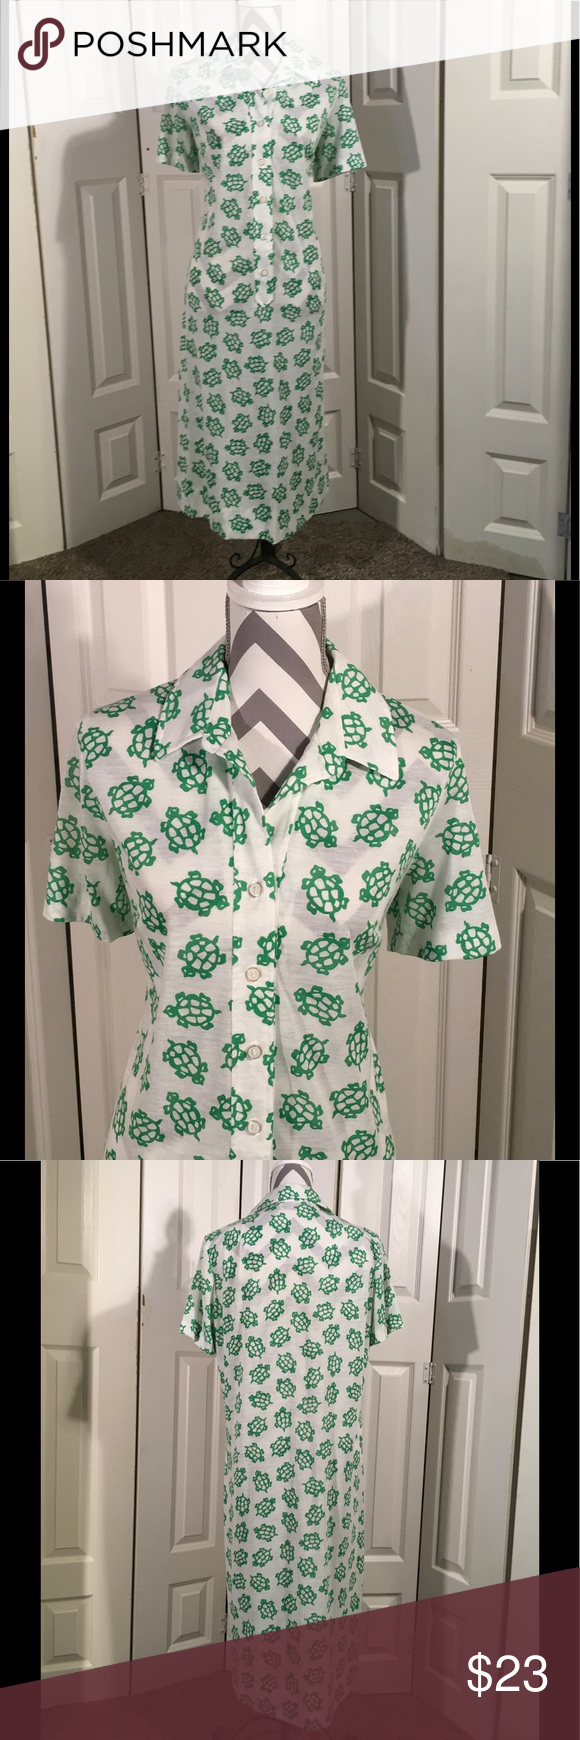 "Vintage shirt dress with turtles size Large Vintage shirt dress with a cute green turtle pattern.  The fabric is a jersey like cotton blend. Buttons up the front center.  Best fit for a modern size Large. Bust - up to 46"".  Waist - up to 42"".  Hips - up to 50"". Length - 45"" Vintage Dresses"